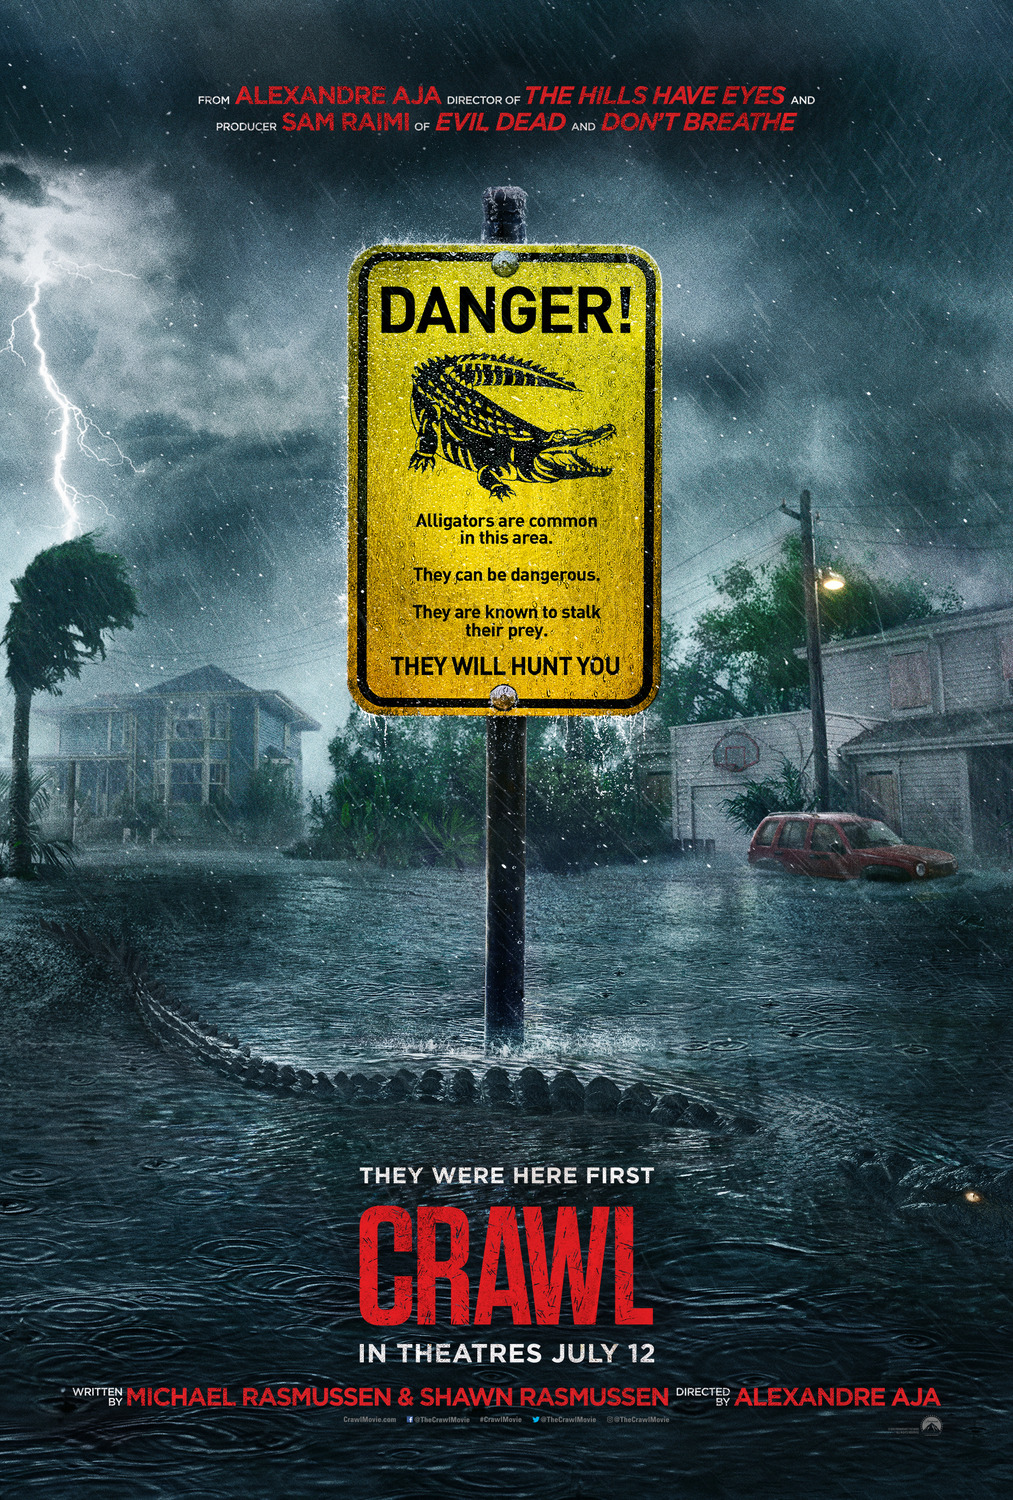 Crawl film review: a good time with gators